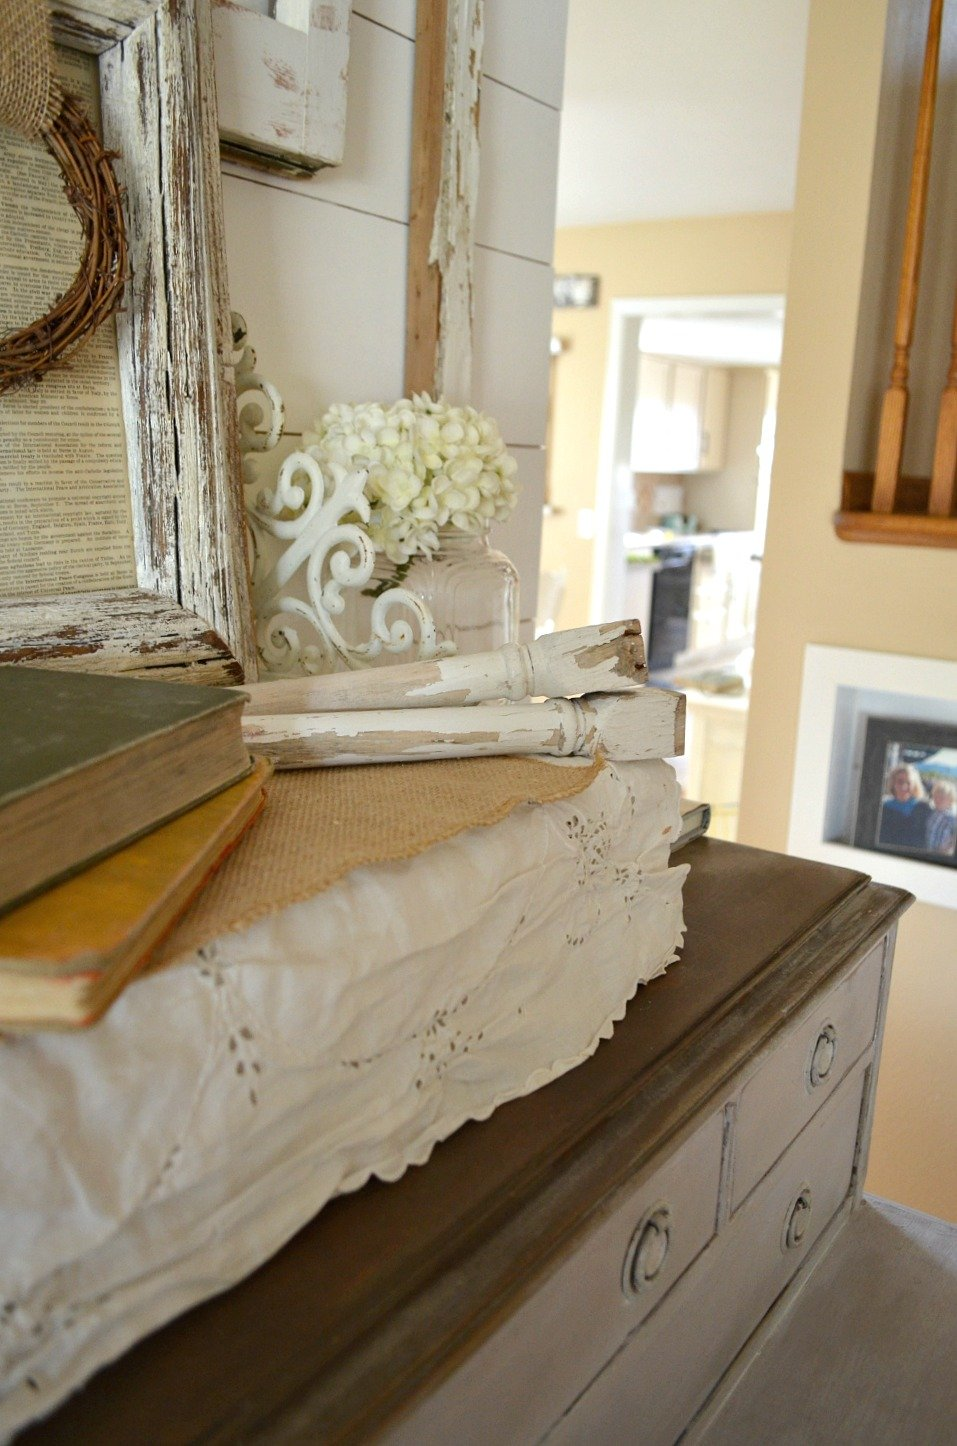 Spindles in farmhouse style vignette